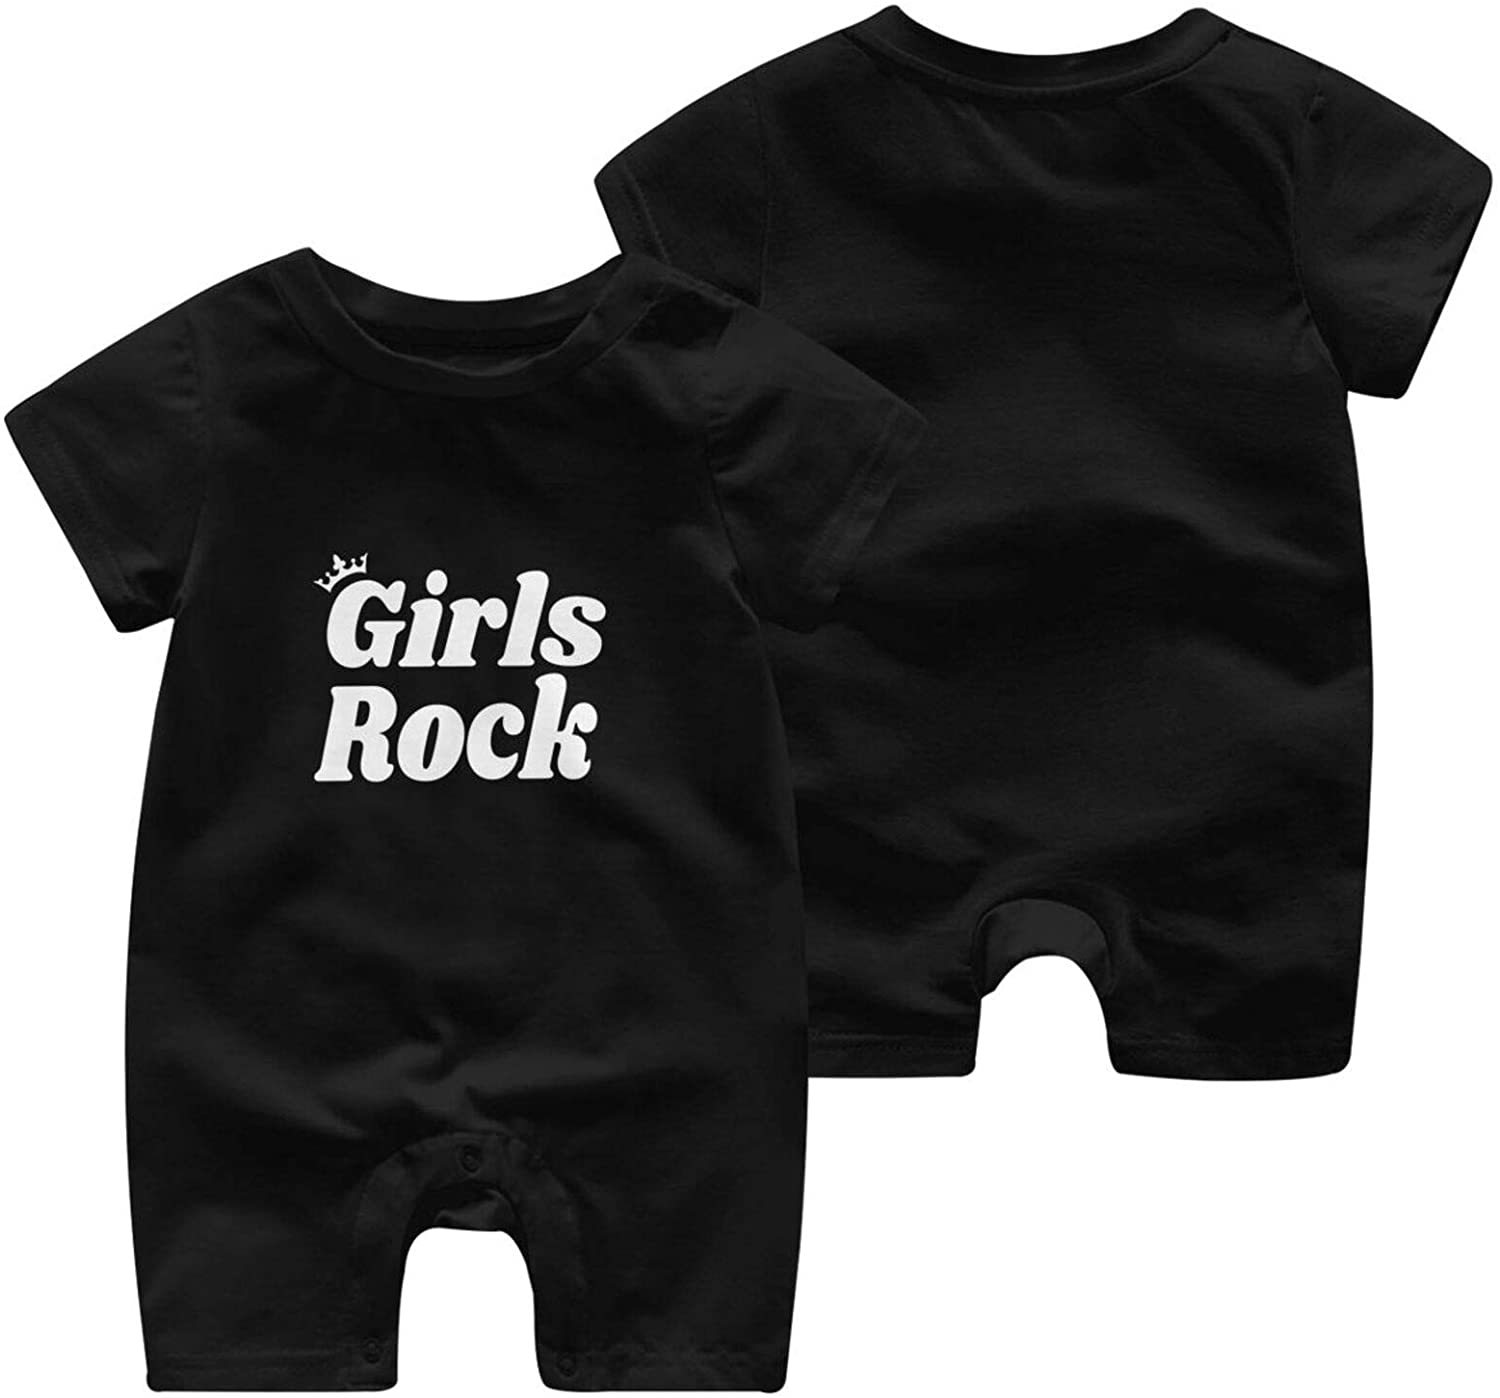 Girls Rock Baby Short Sleeve Jumpsuit Comfortable and Fashionable Cotton